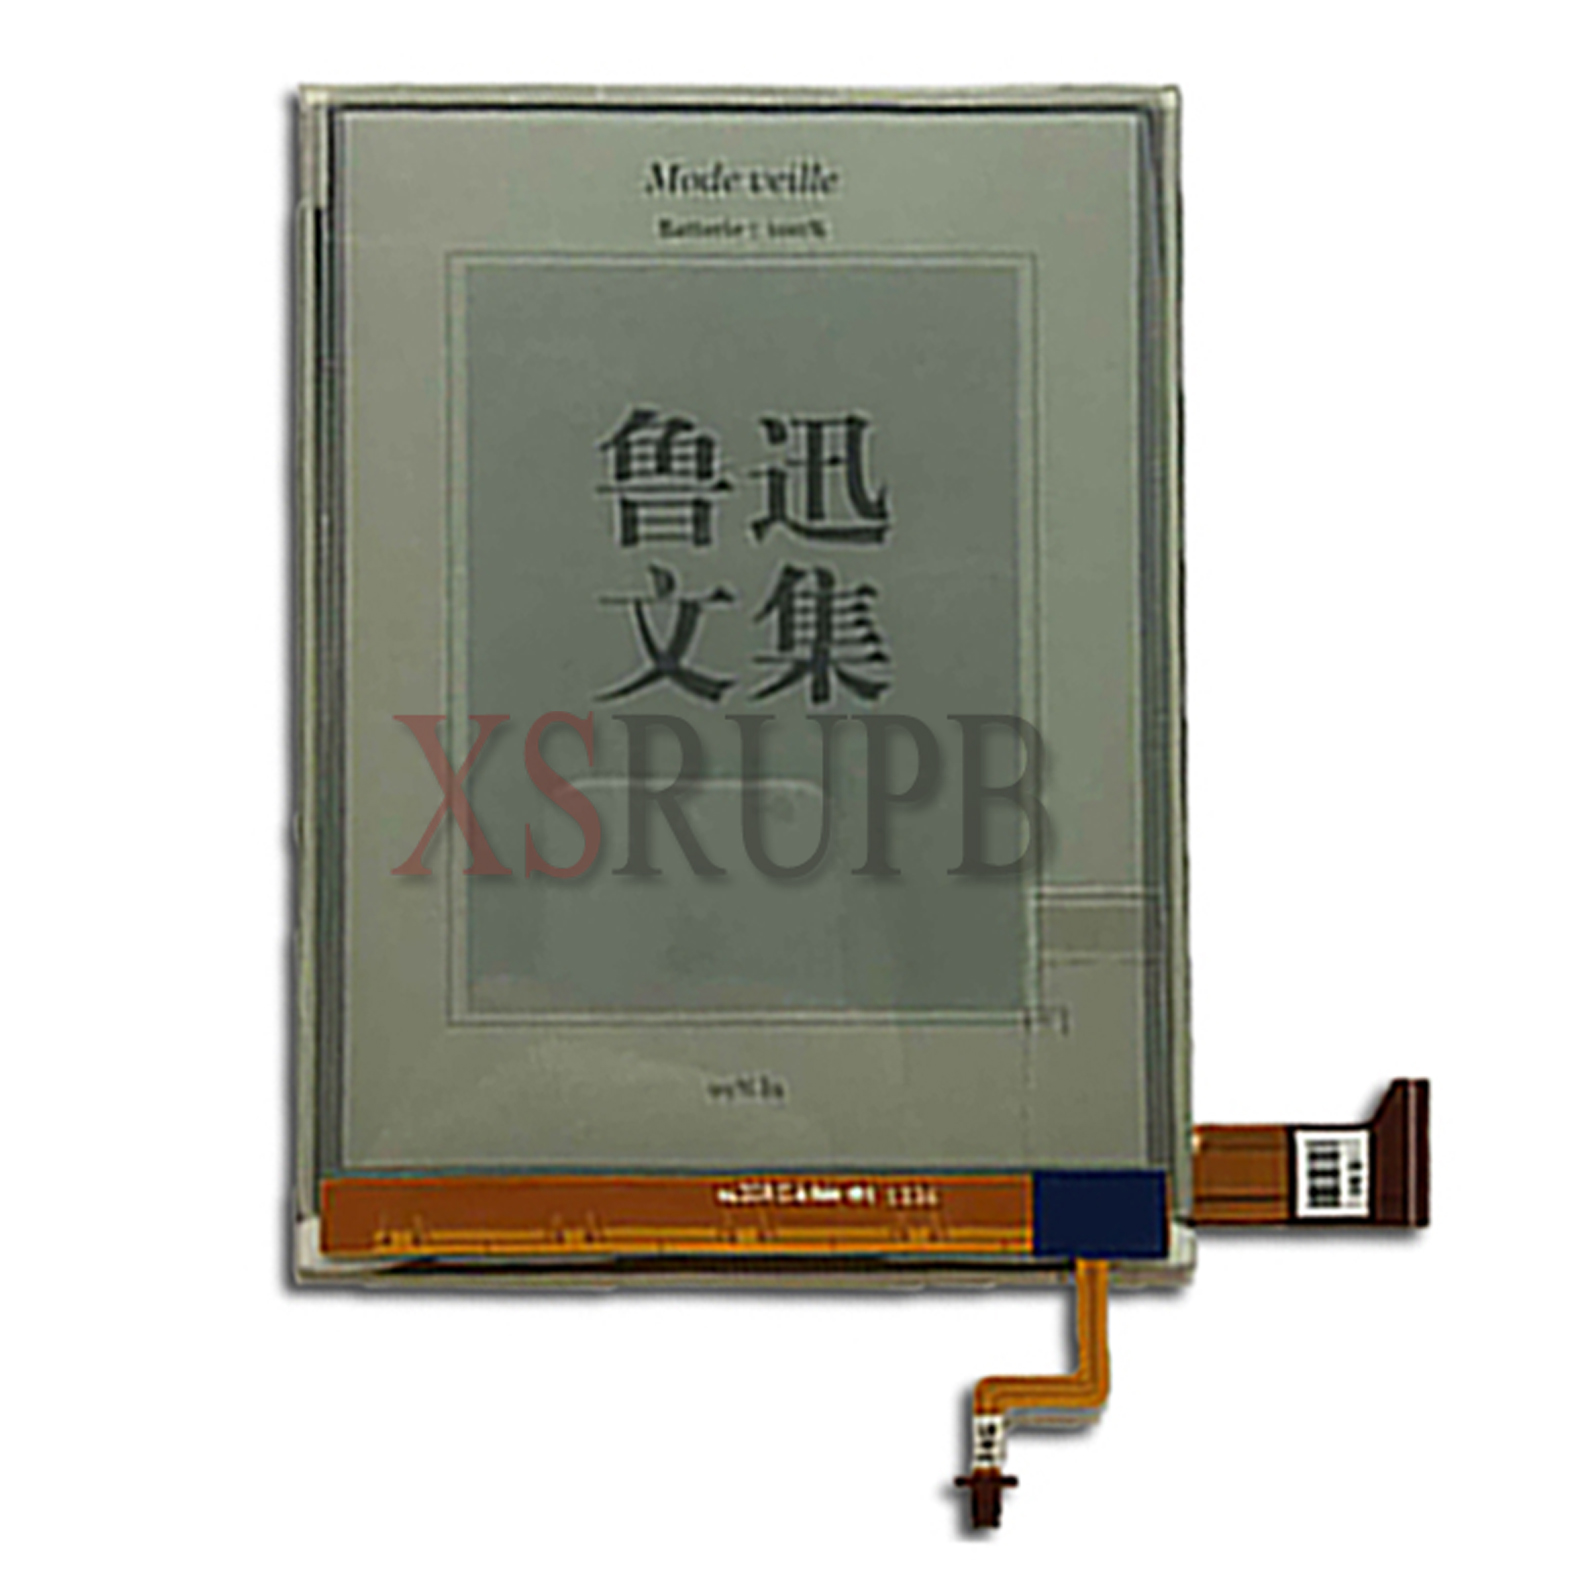 100% original 6-inch HD ED060XG3 ED060XG3(LF)T1-00 LCD for E-book readers LCD display(Not use pocketbook)<br>